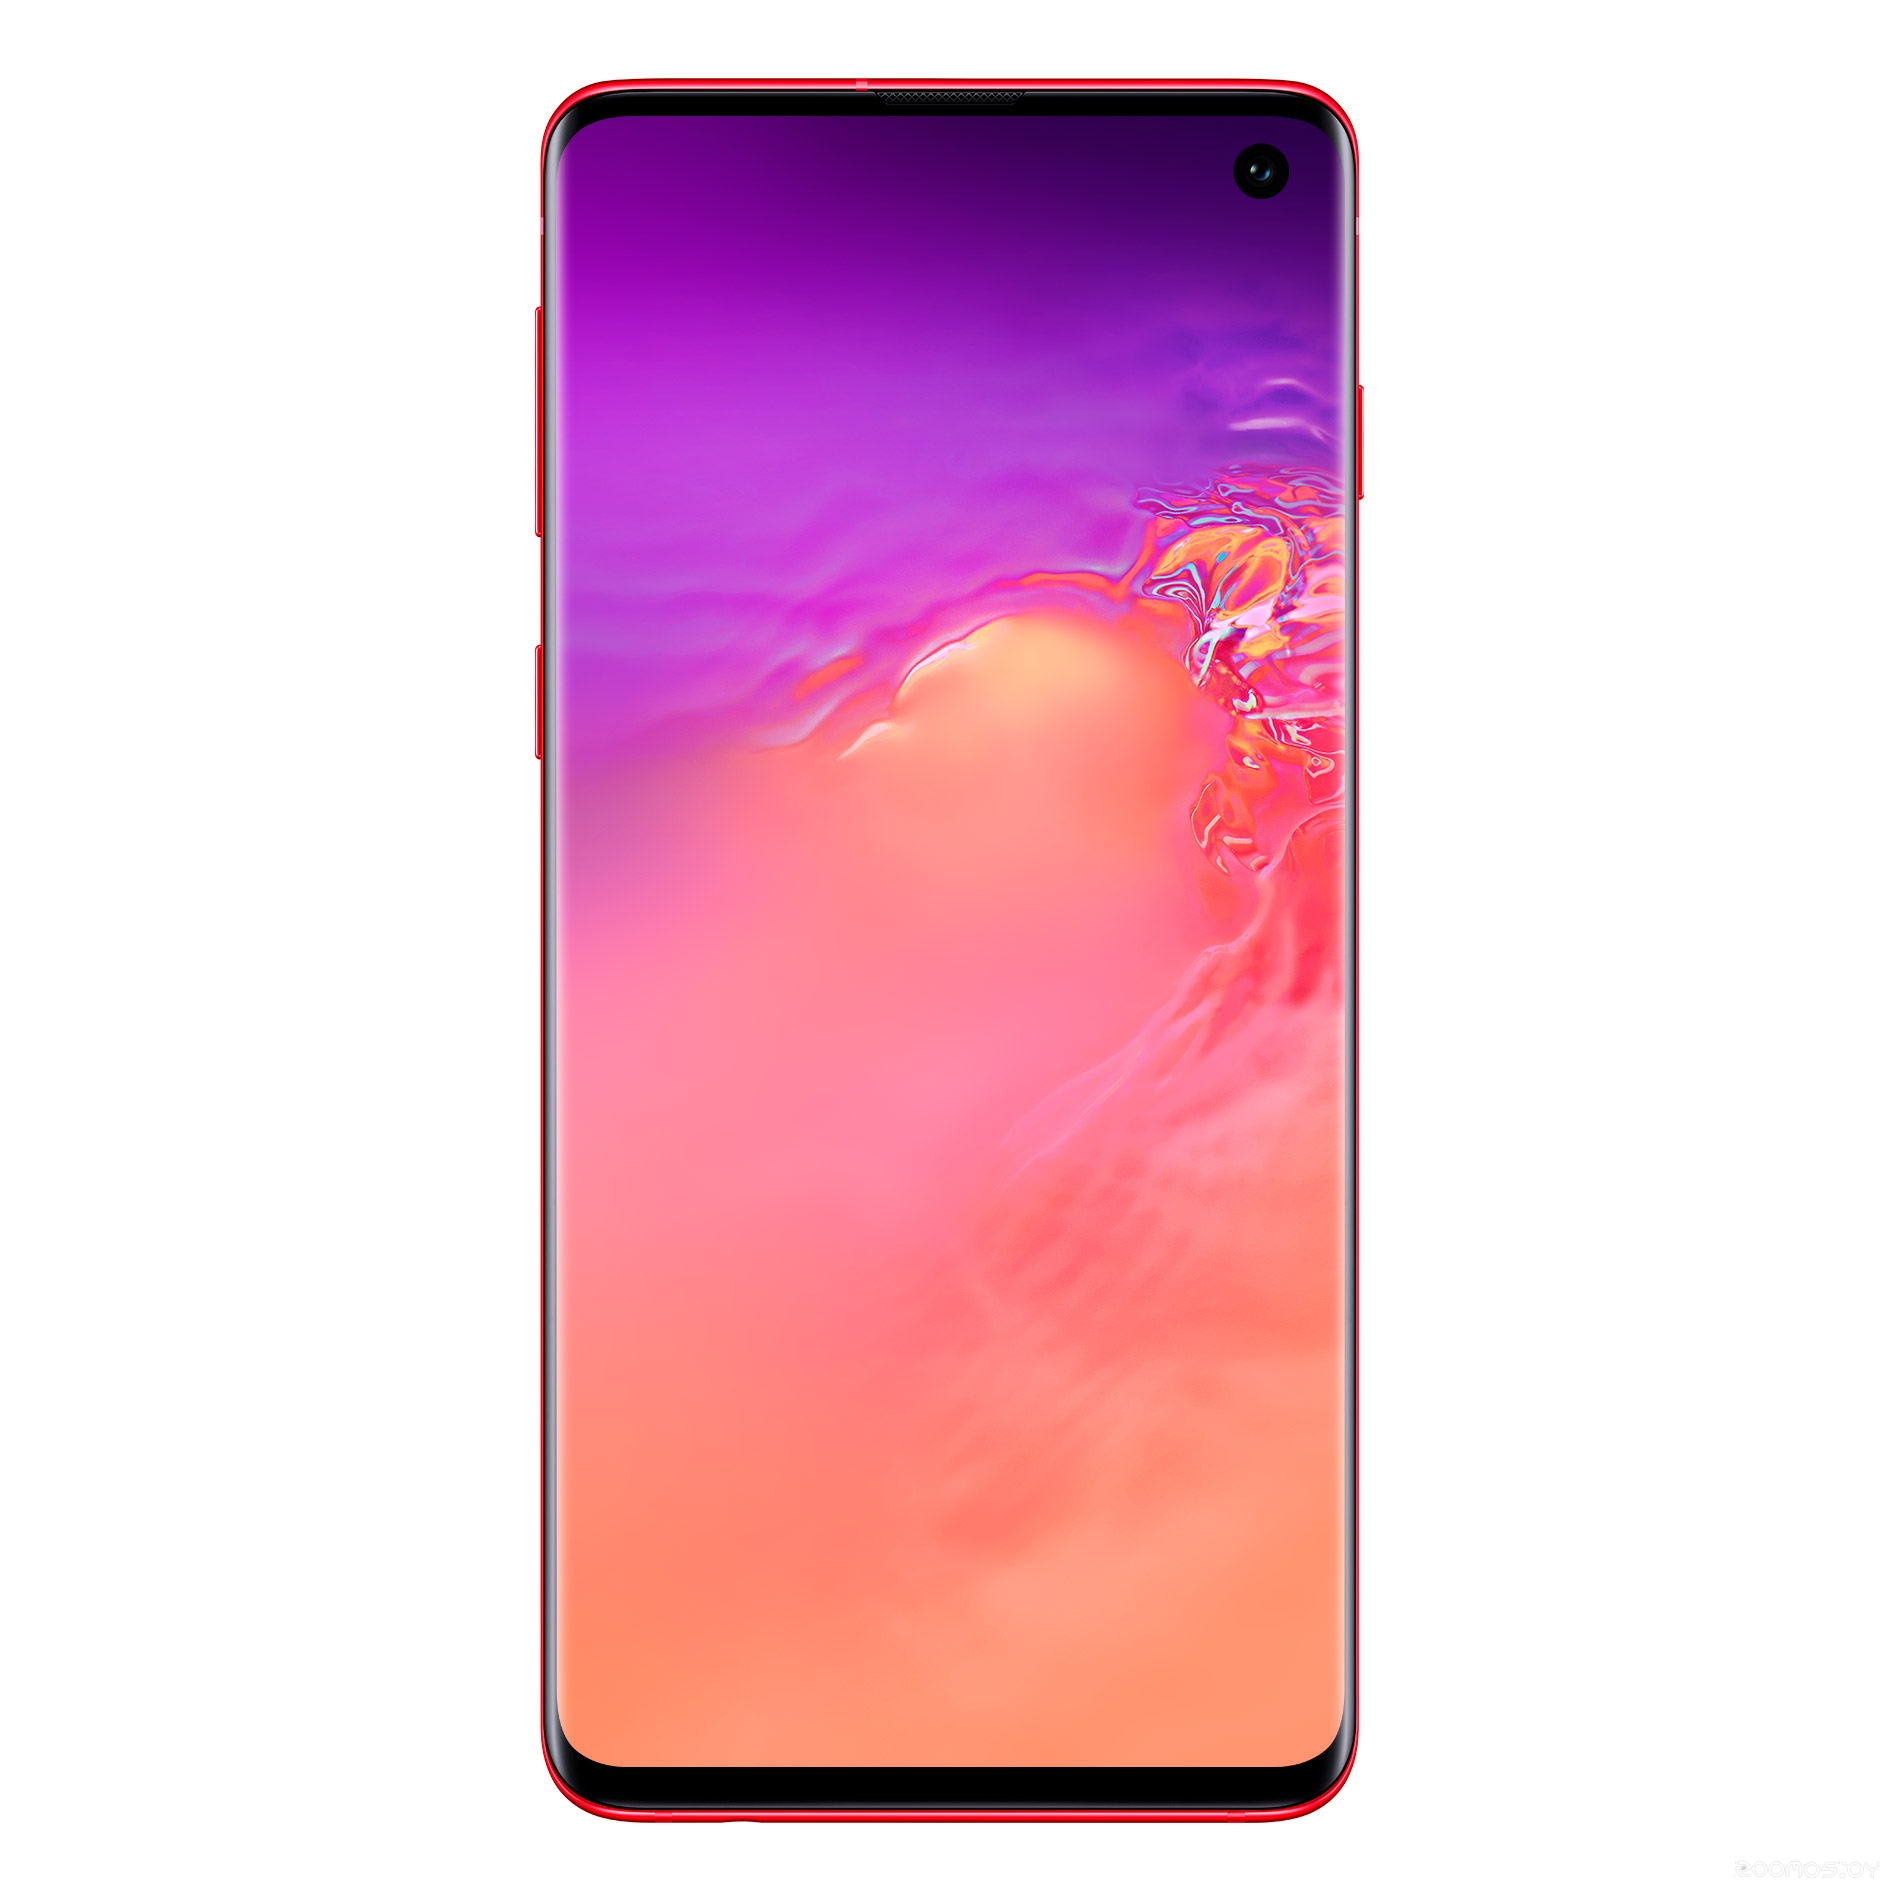 Samsung Galaxy S10 8Gb/128Gb (Red)